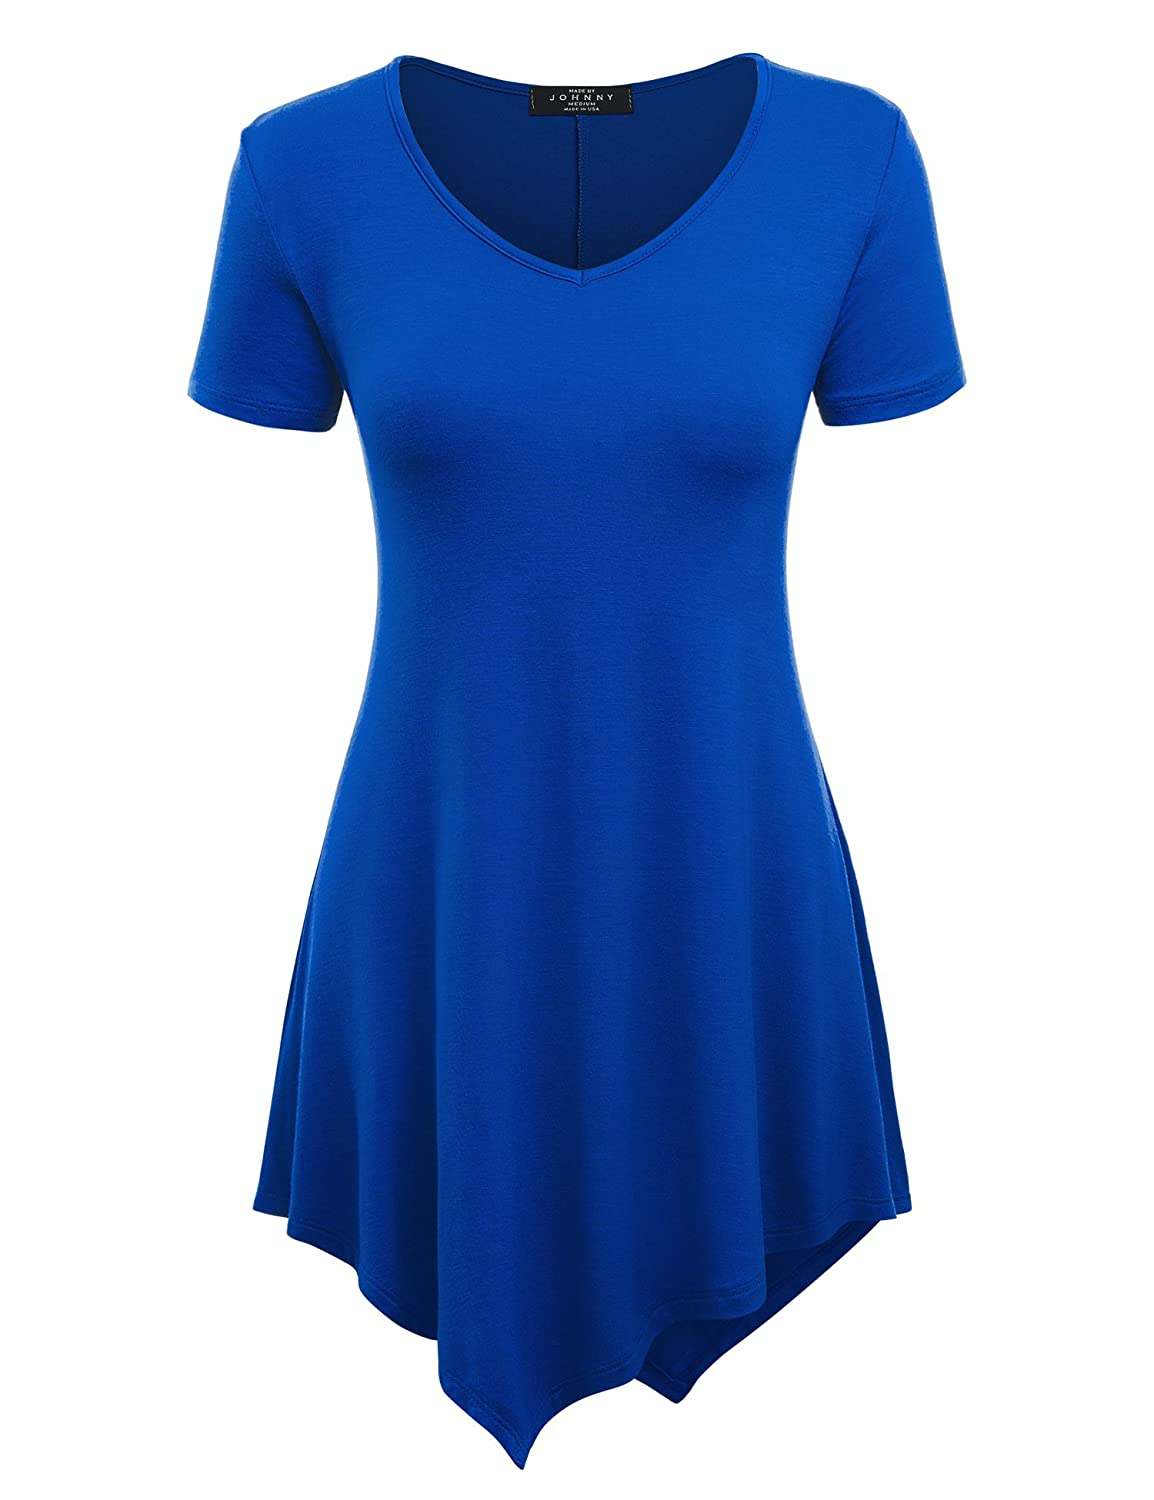 MBJ Womens Short Sleeve Various Hem Tunic Top - Made in USA MBJWT626